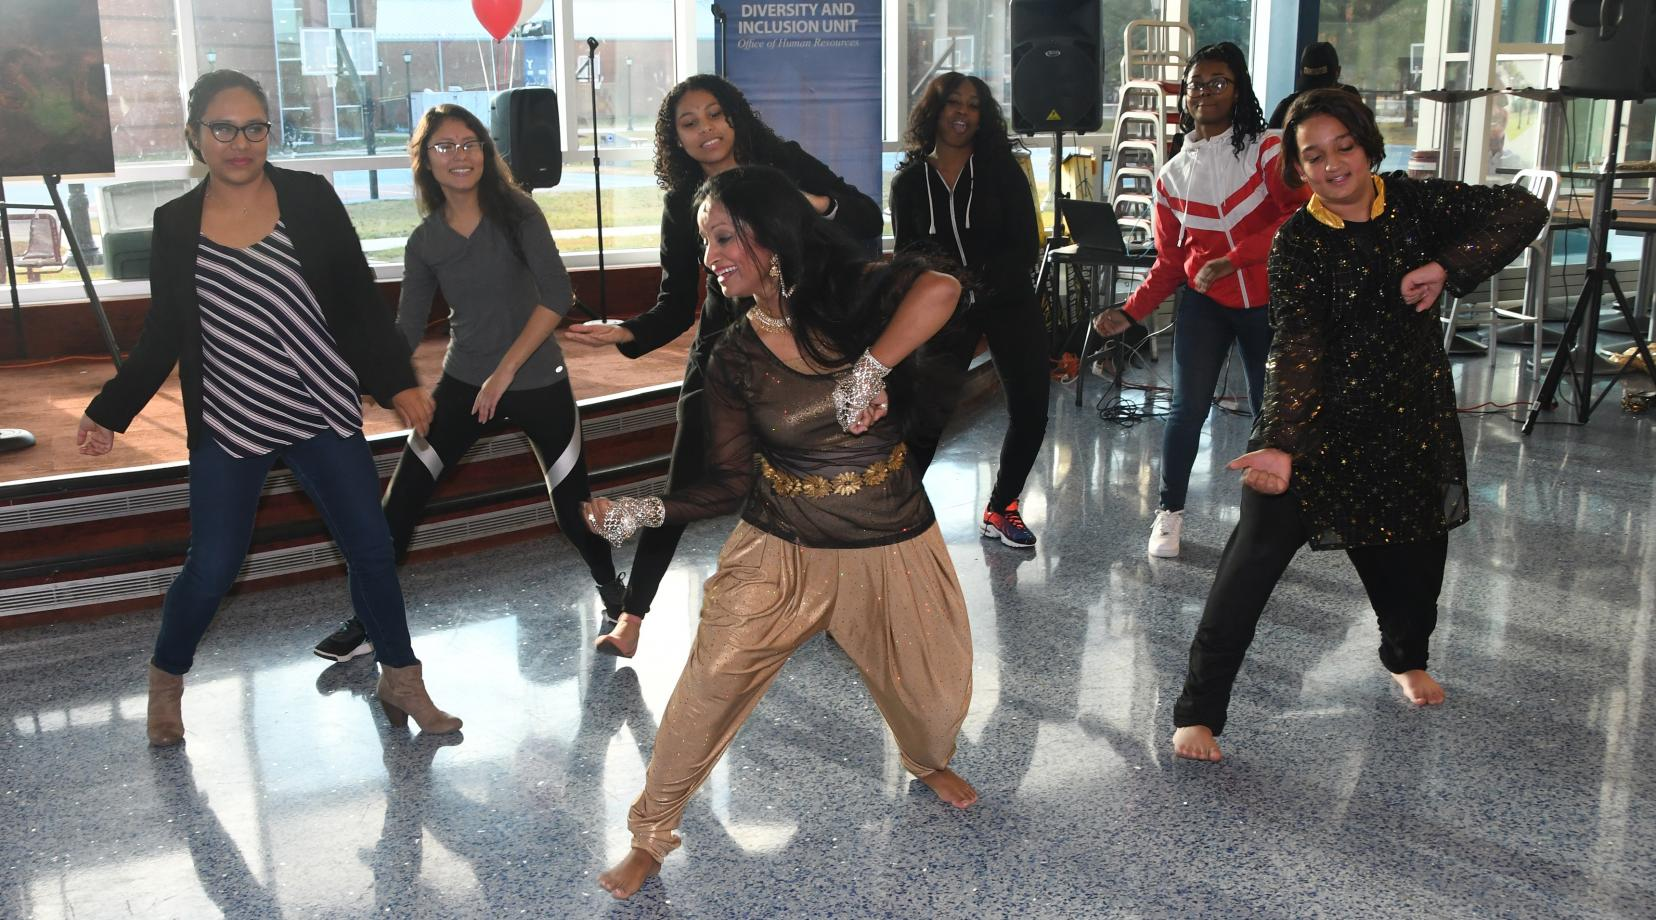 An dancer from Bangladesh teaches some audience participant a dance from her country during the Unity in Diversity event.